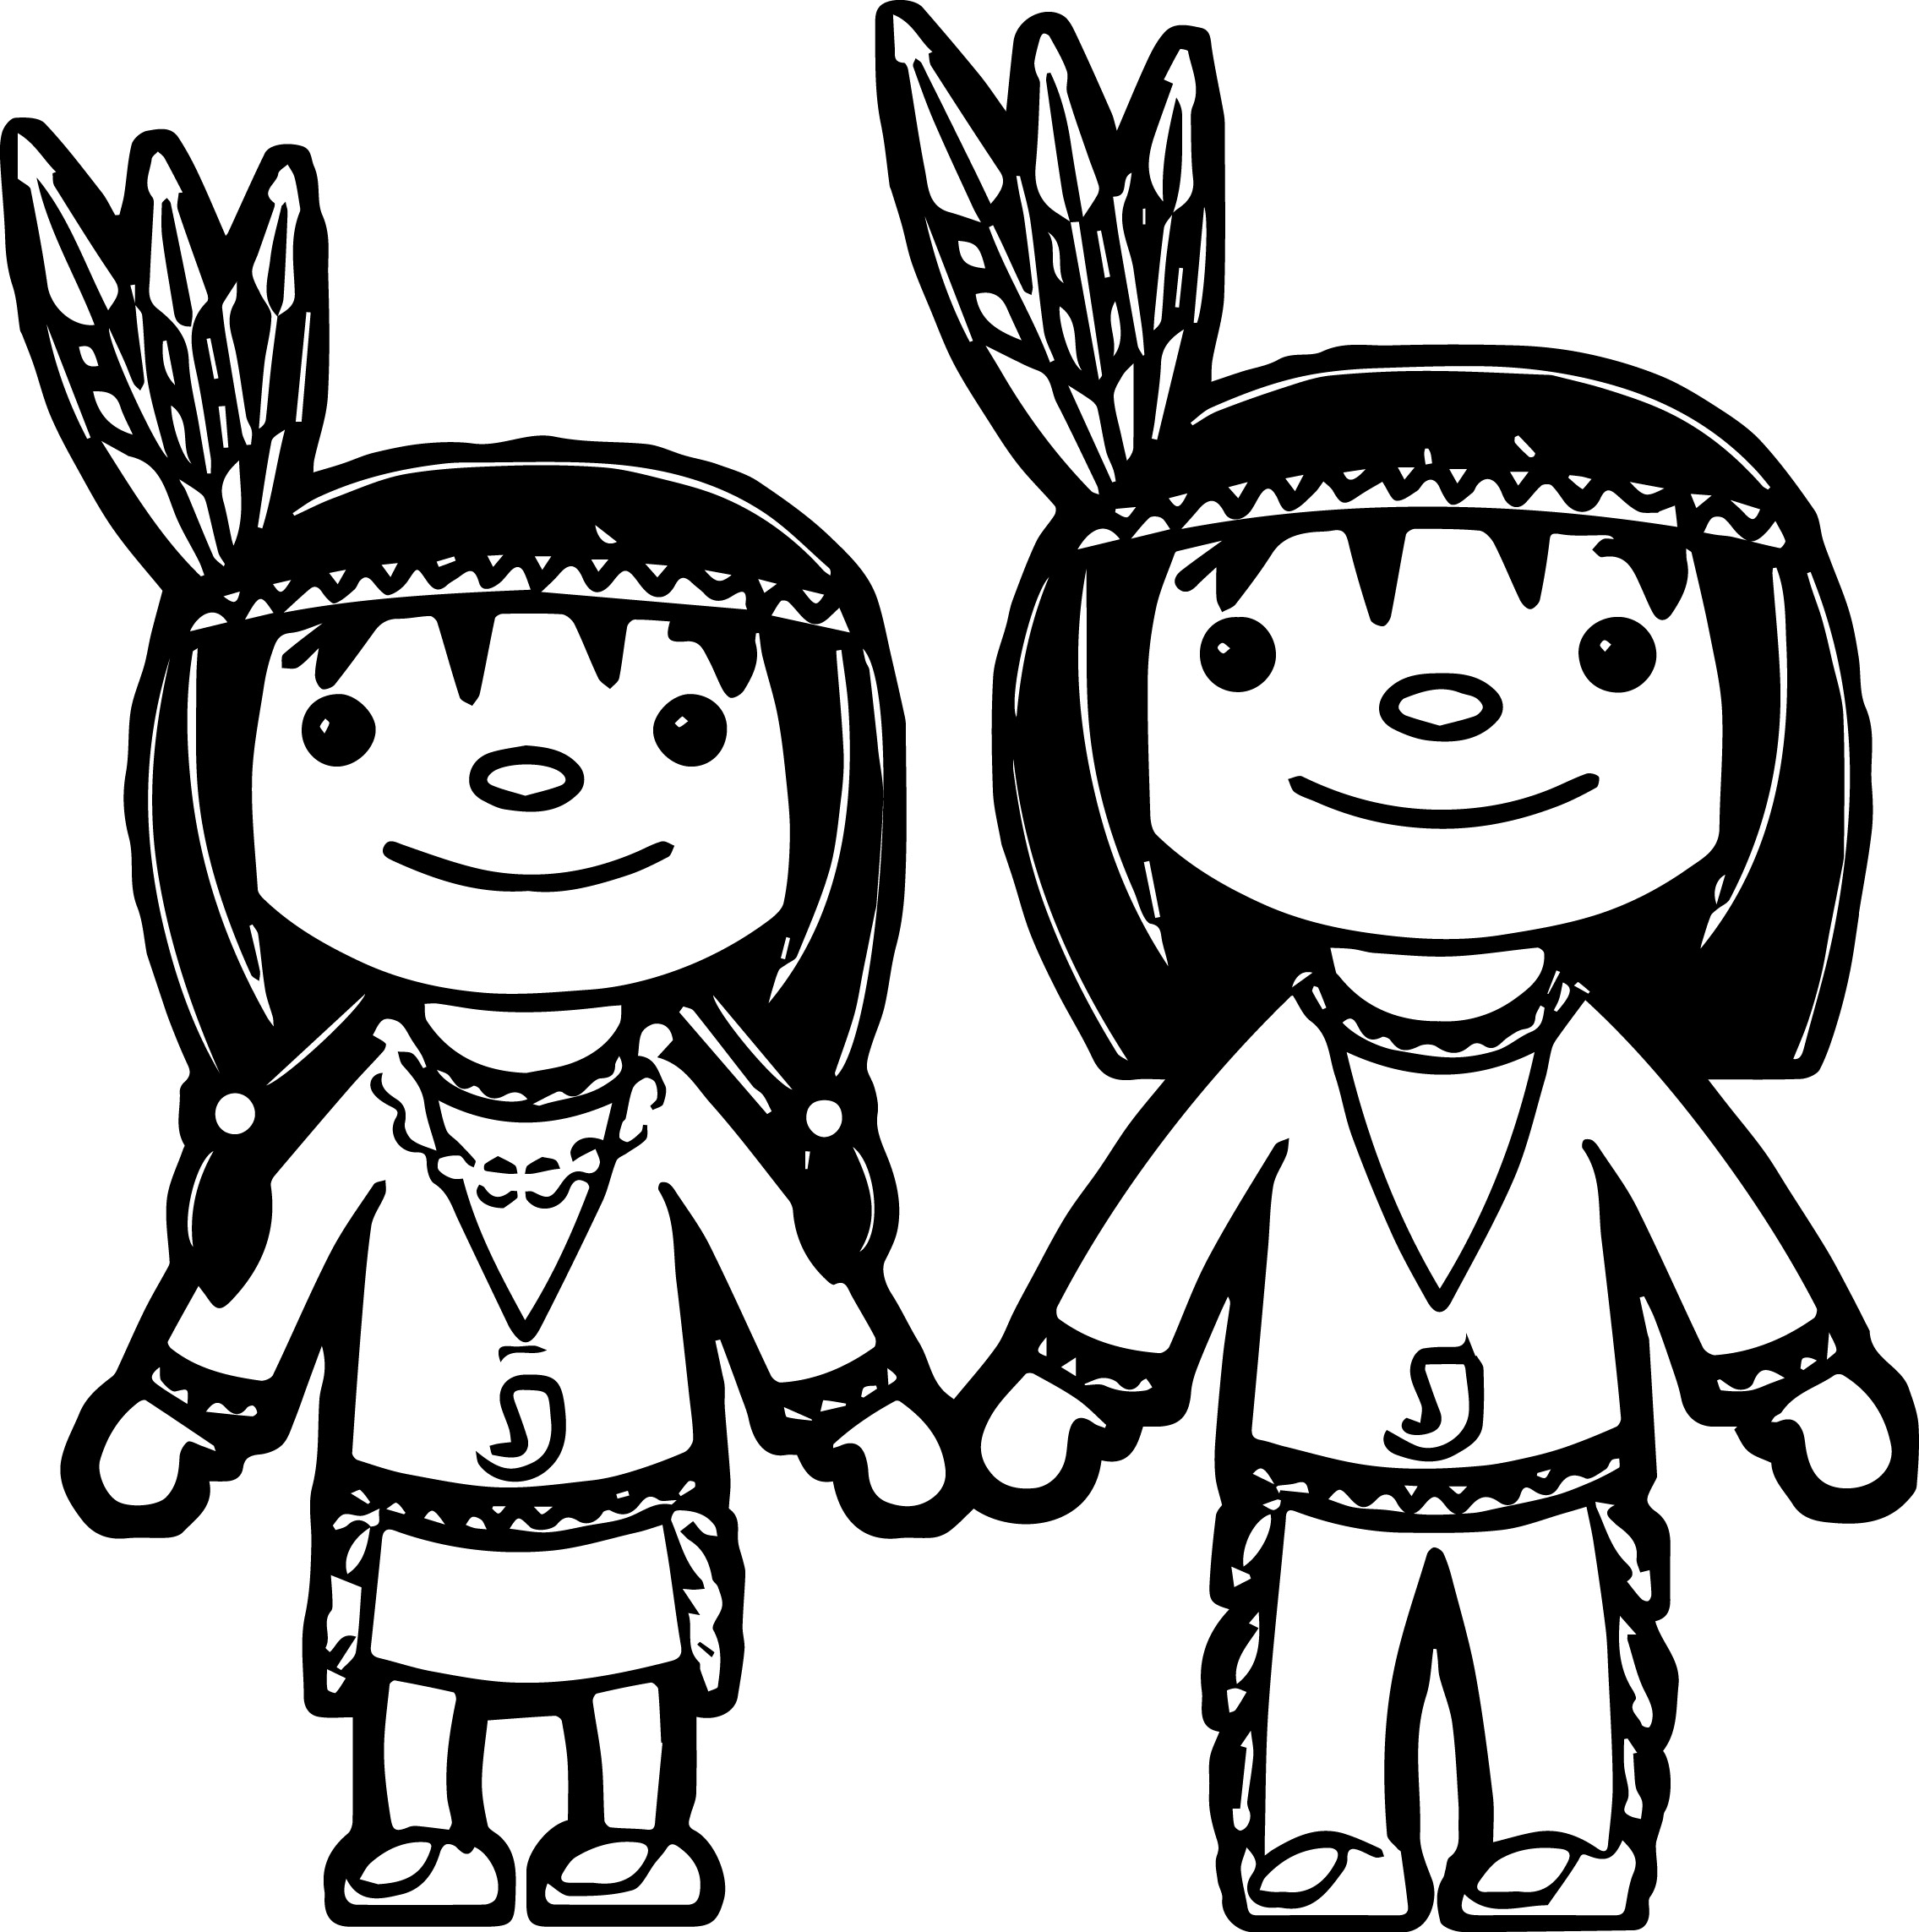 American Indian Girl And Boy Coloring Page | Wecoloringpage.com